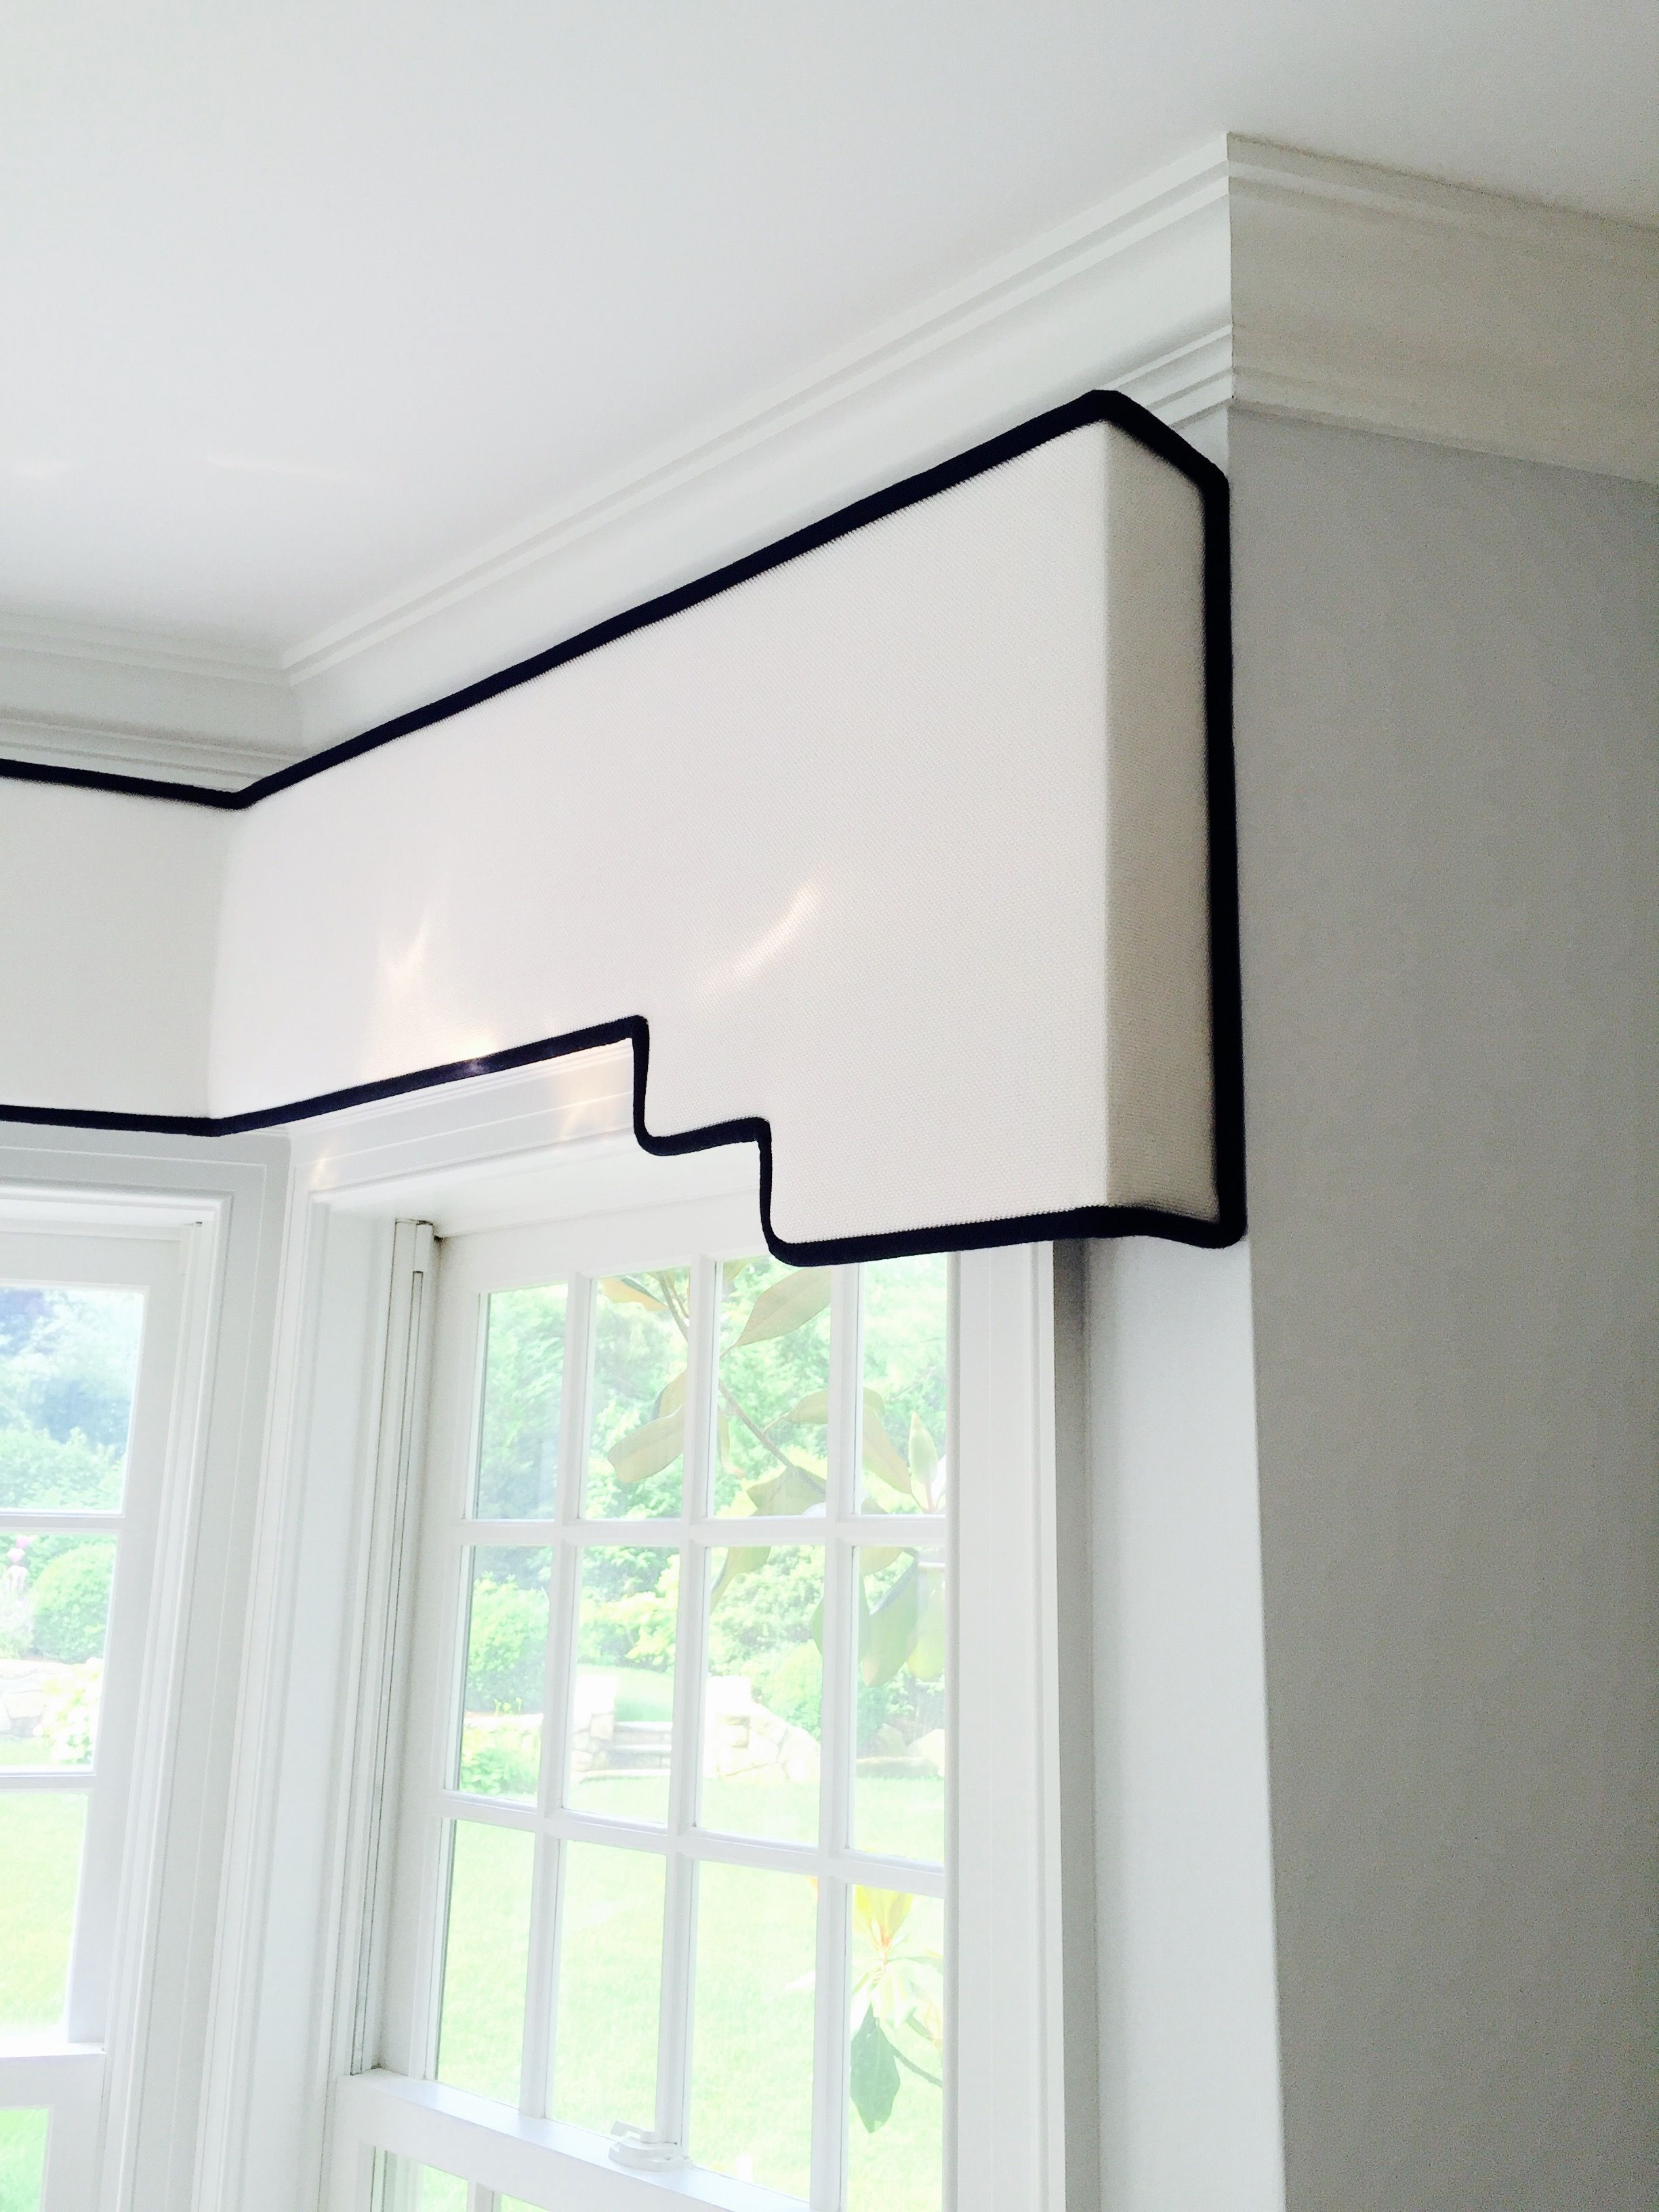 Soft Edged Stepped Cornice Board In Zimmer Rohde White